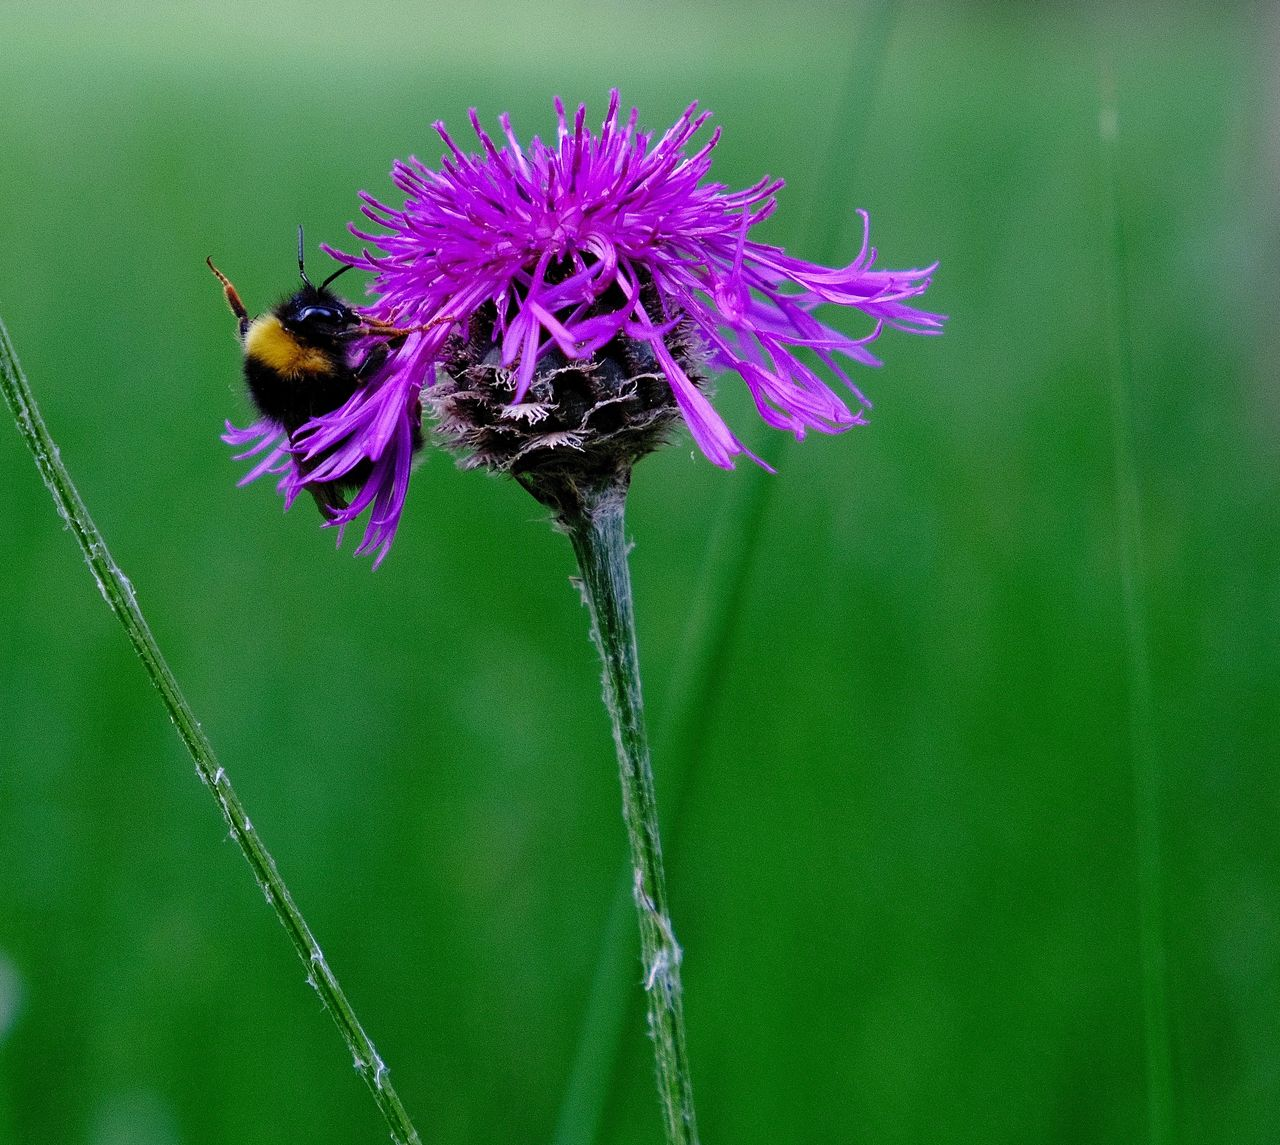 Blooming Bummblebee Flower Flower Head Focus On Foreground Fragility Freshness Insect Nature Pollination Purple